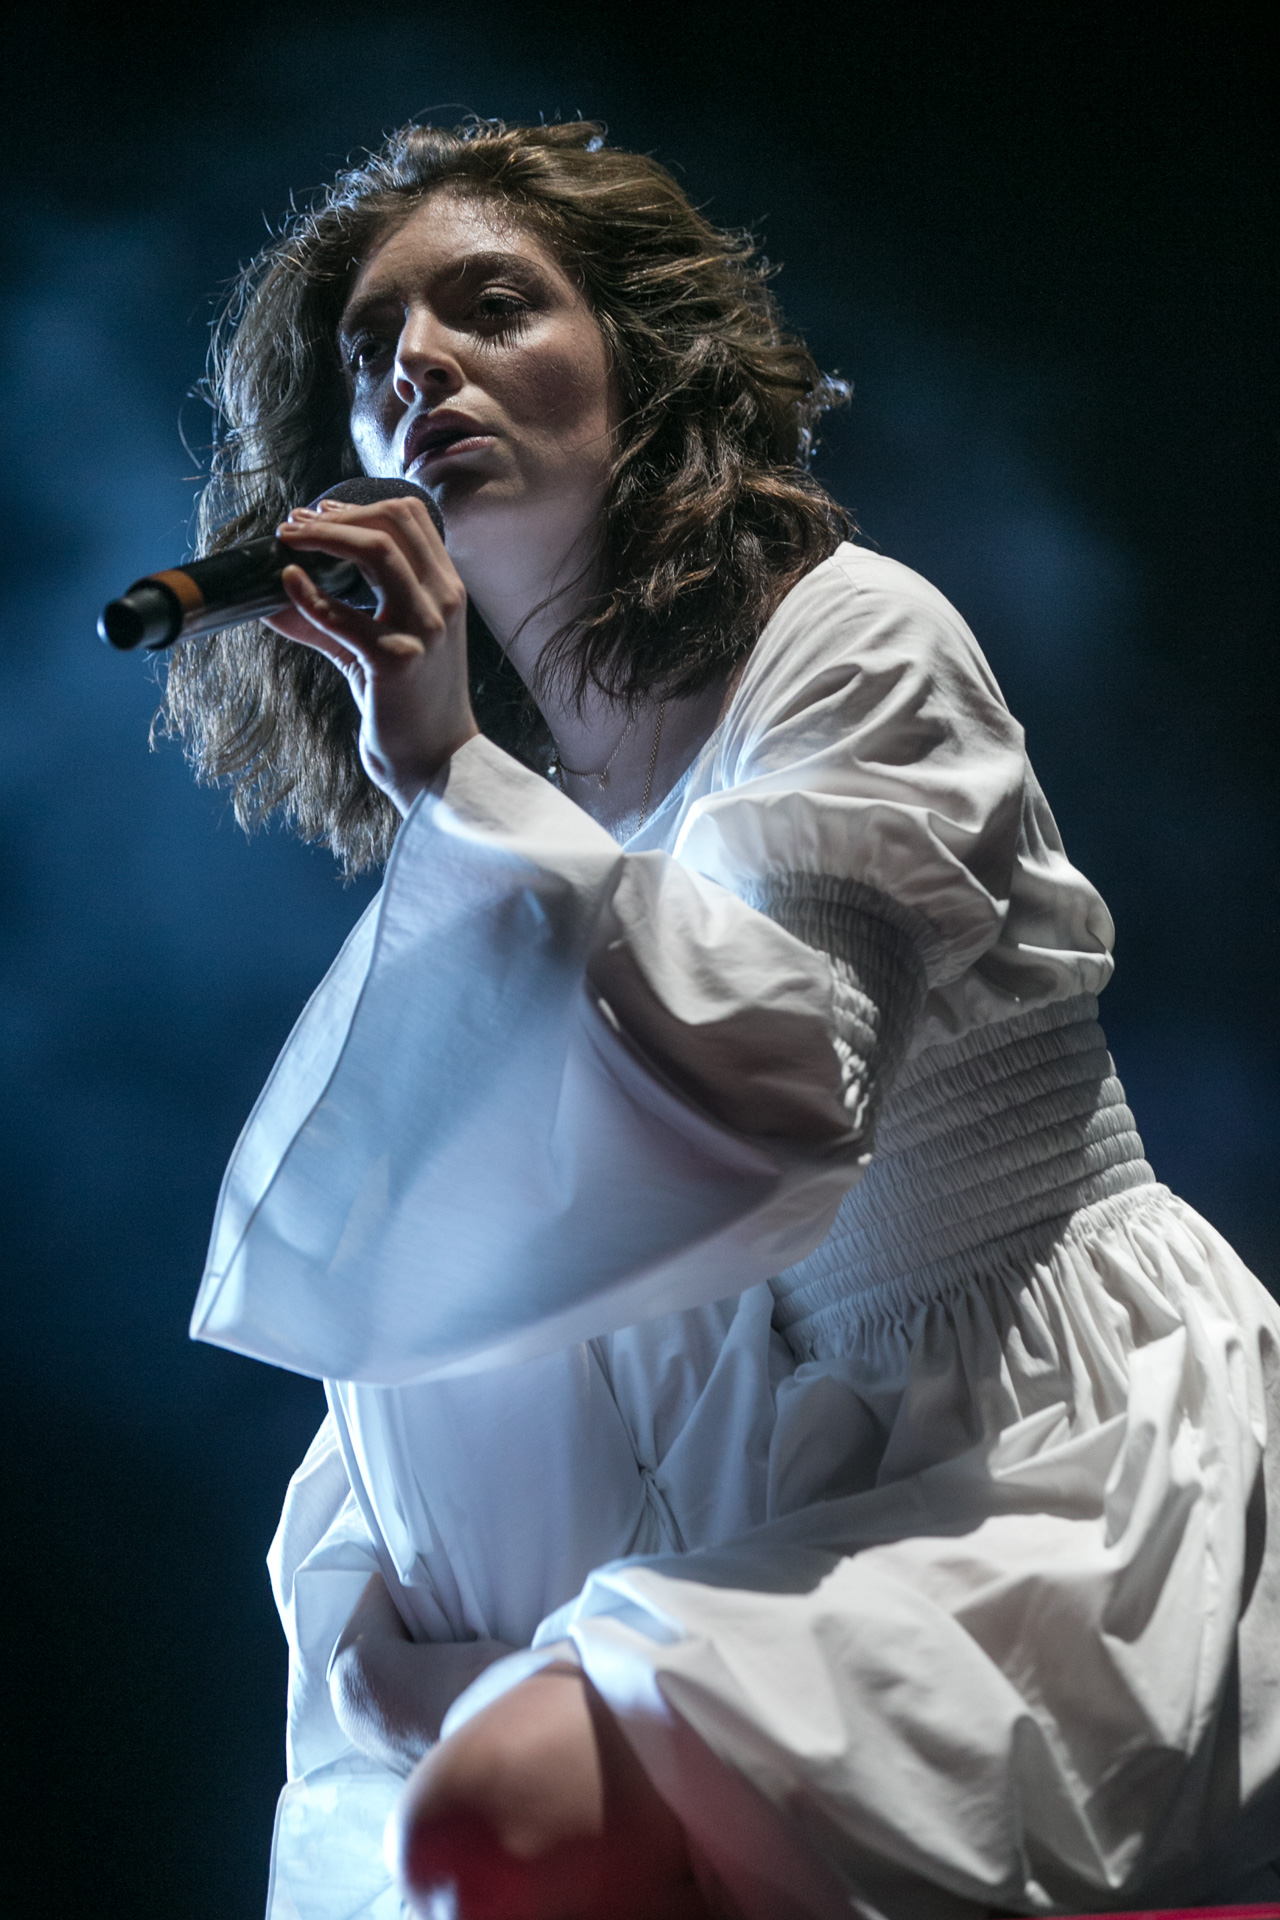 Osheaga day 1 photos and review (Lorde, Justice, MGMT, Milky Chance and more) 2